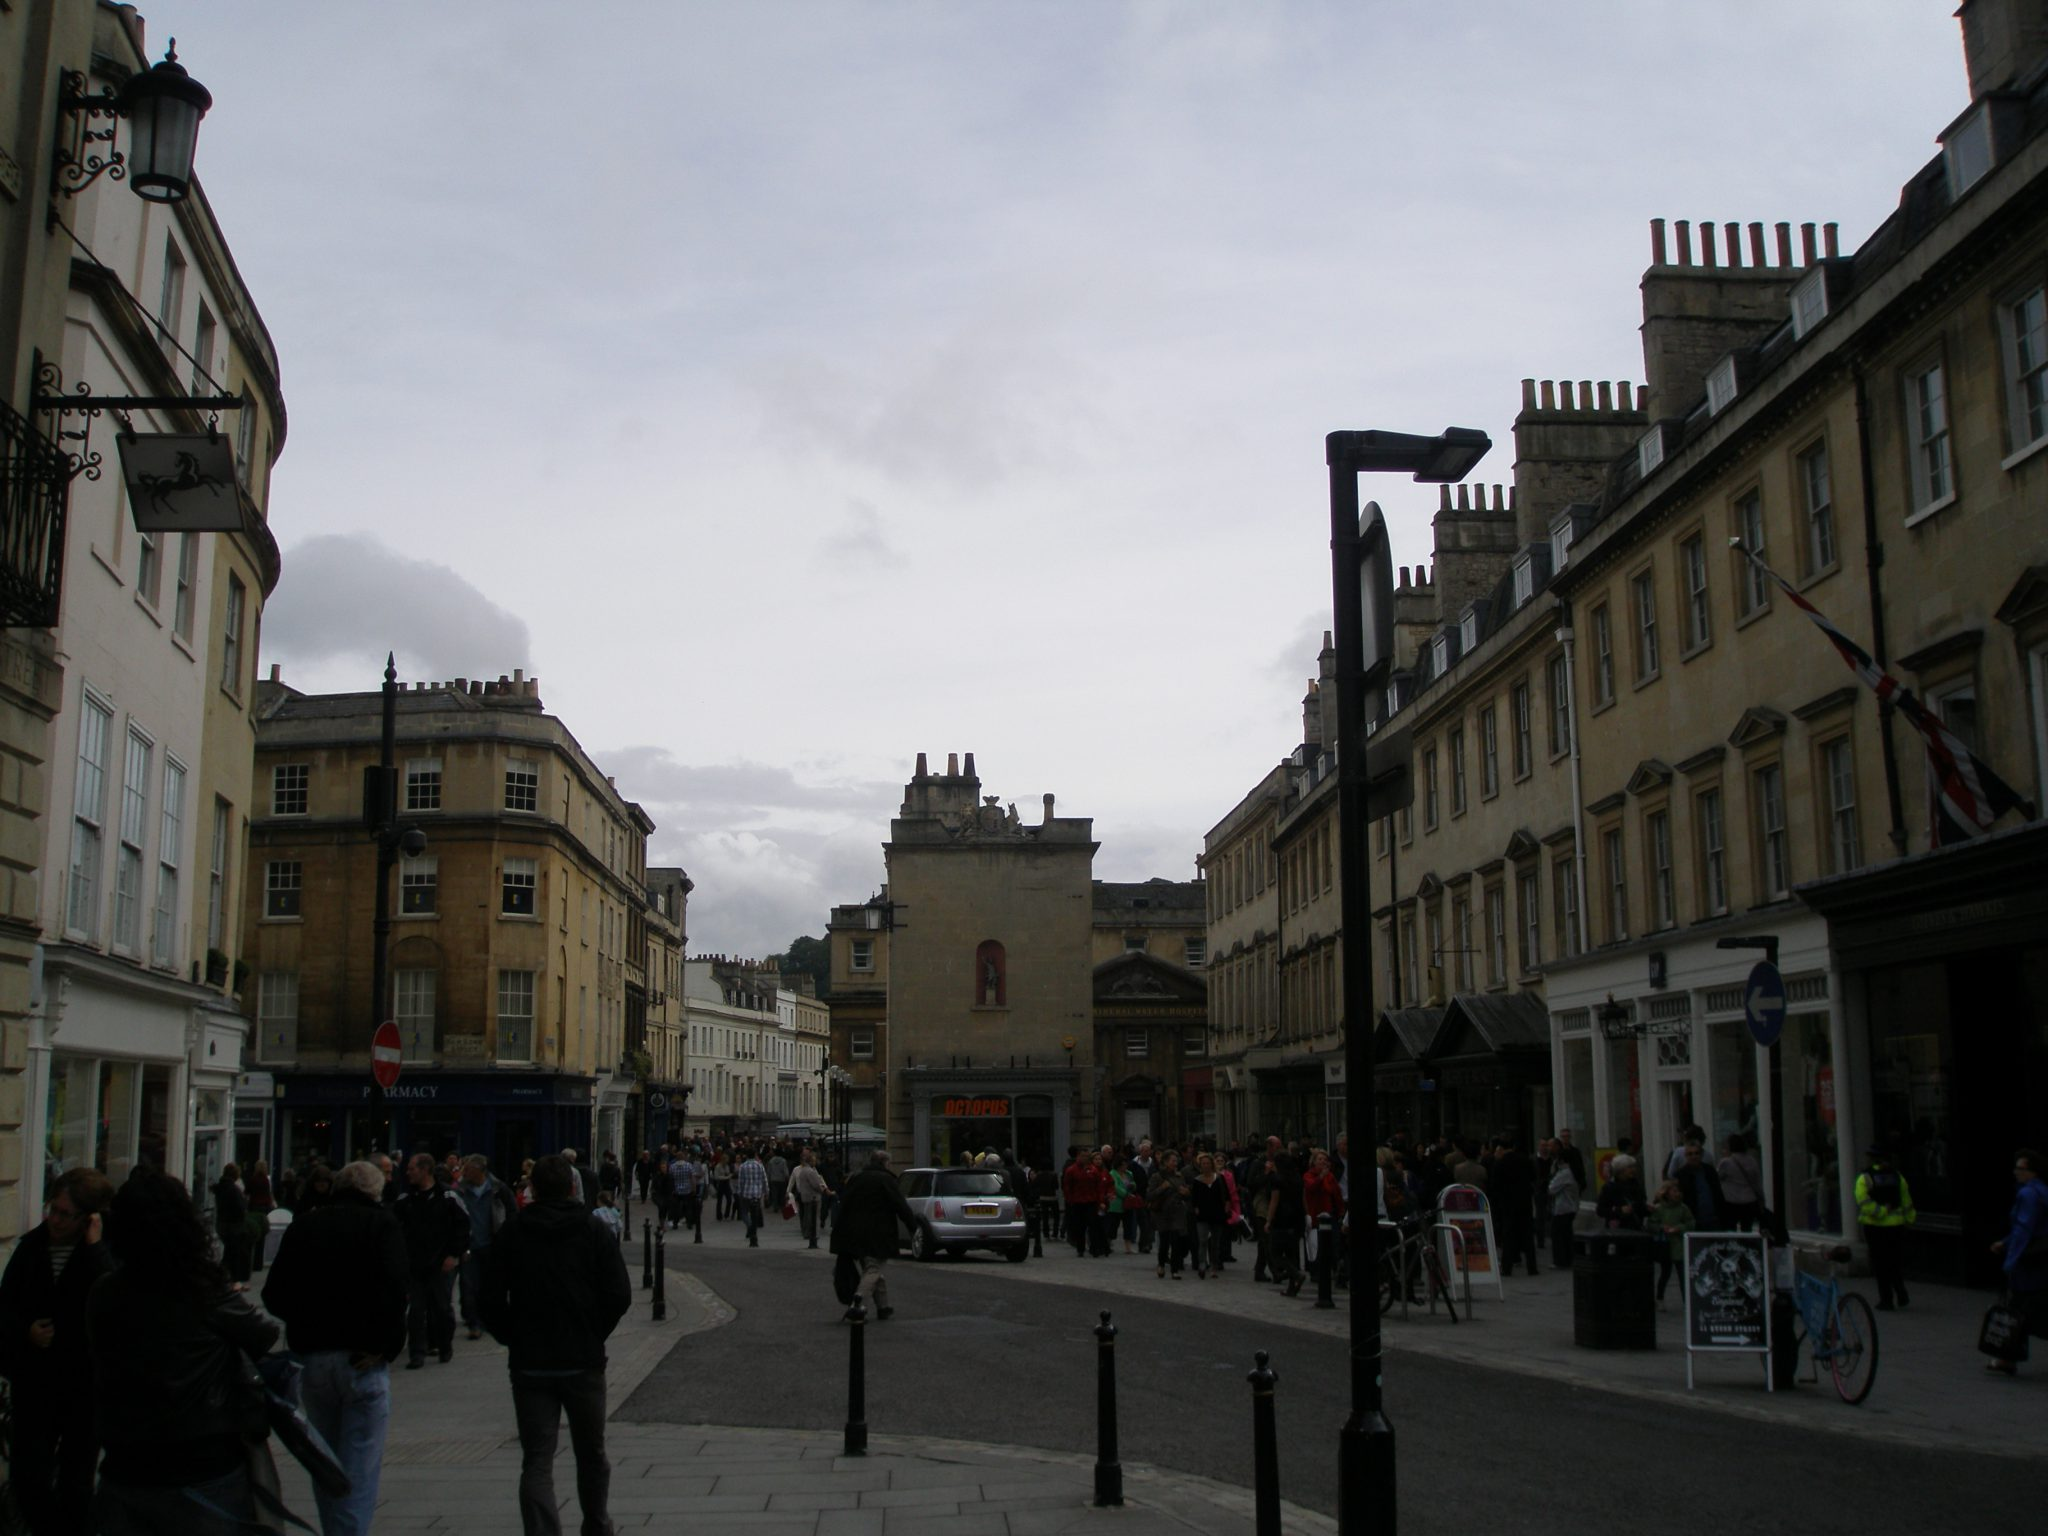 Lower end of Milsom Street